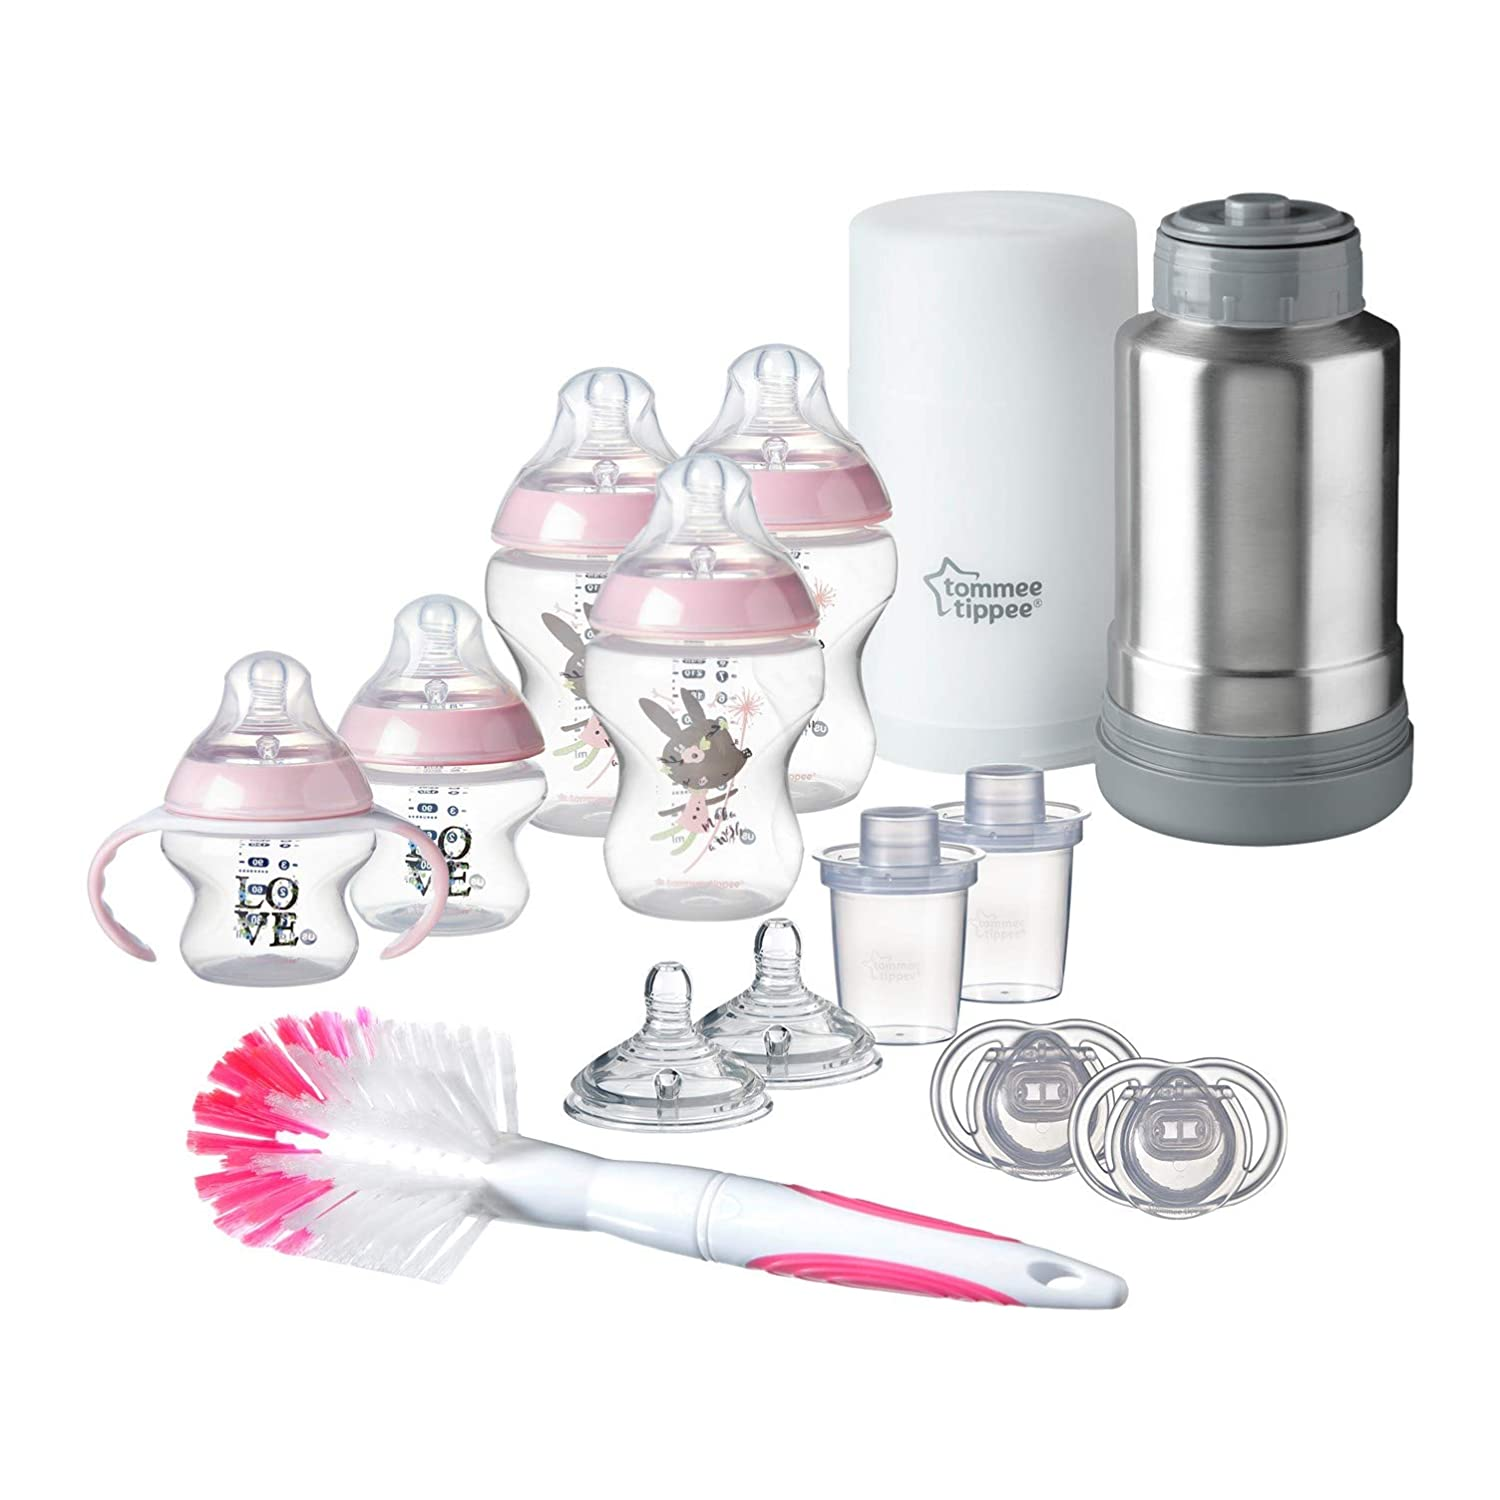 Tommee Tippee Closer to Nature Newborn Baby Feeding Starter Set - Pink, Girl (Design May Vary)